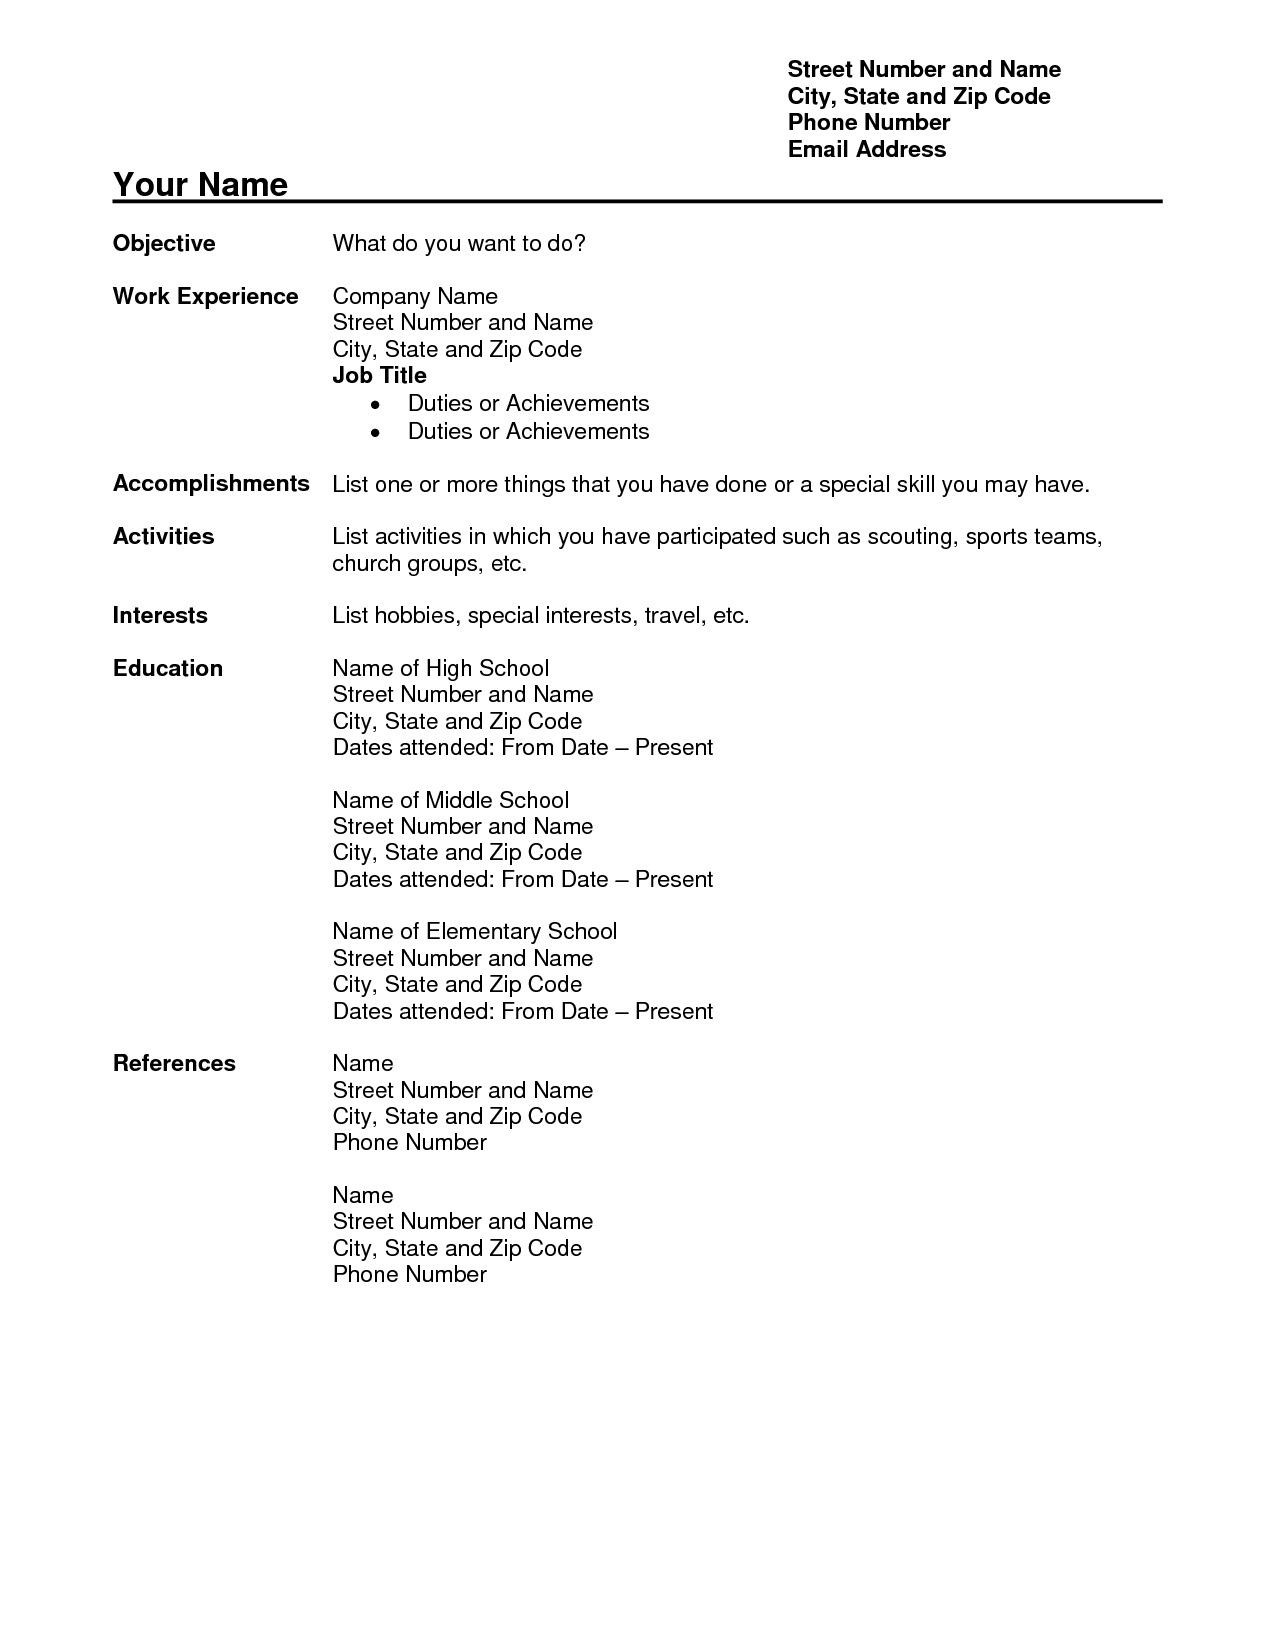 Free Downloadable Resume Templates For Word 2010 Free Teacher Resume Templates Download Free Teacher Resume